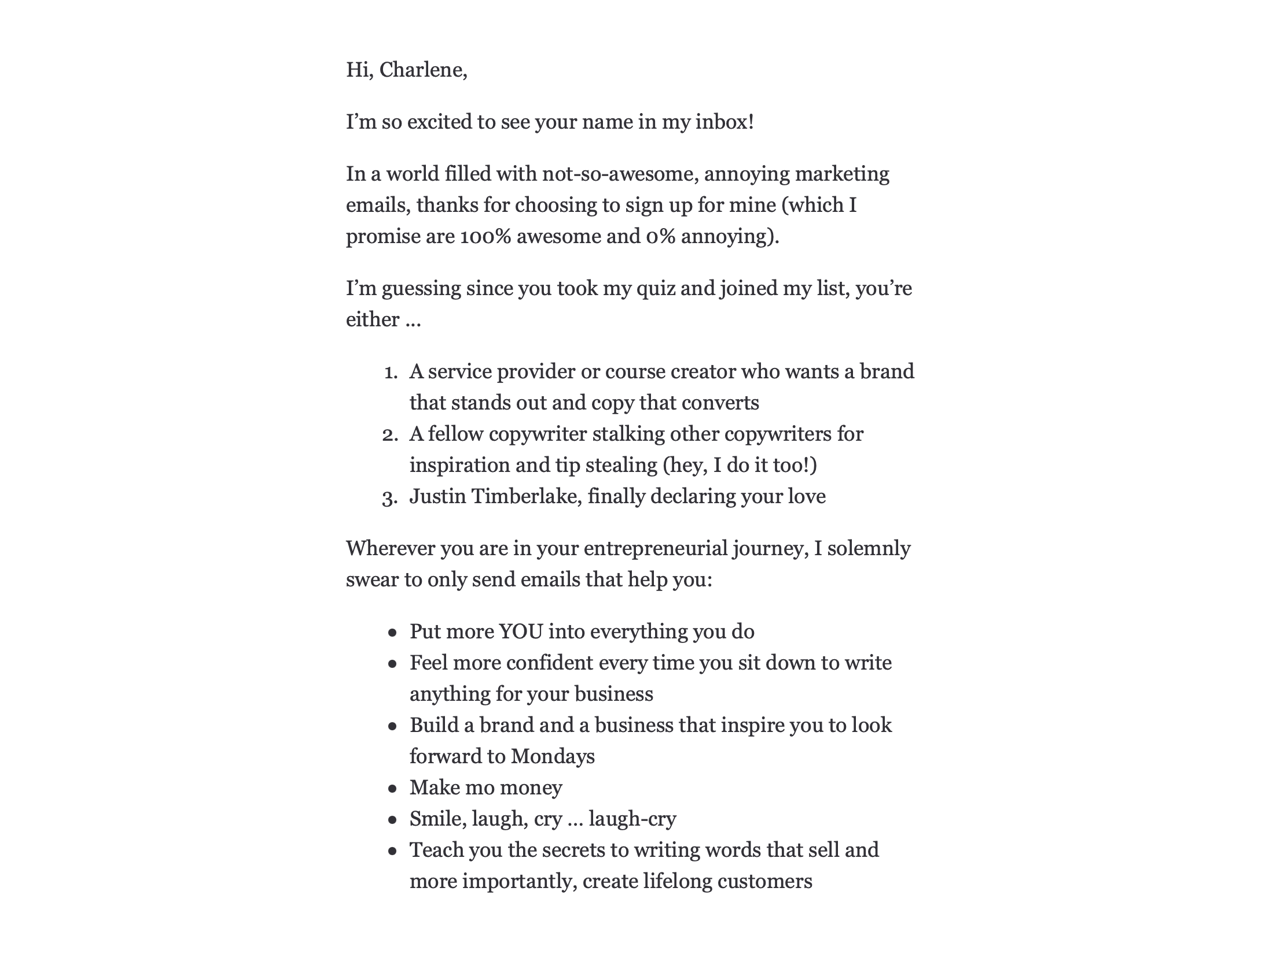 Having a welcome email is a great way to set expectations from your newsletter